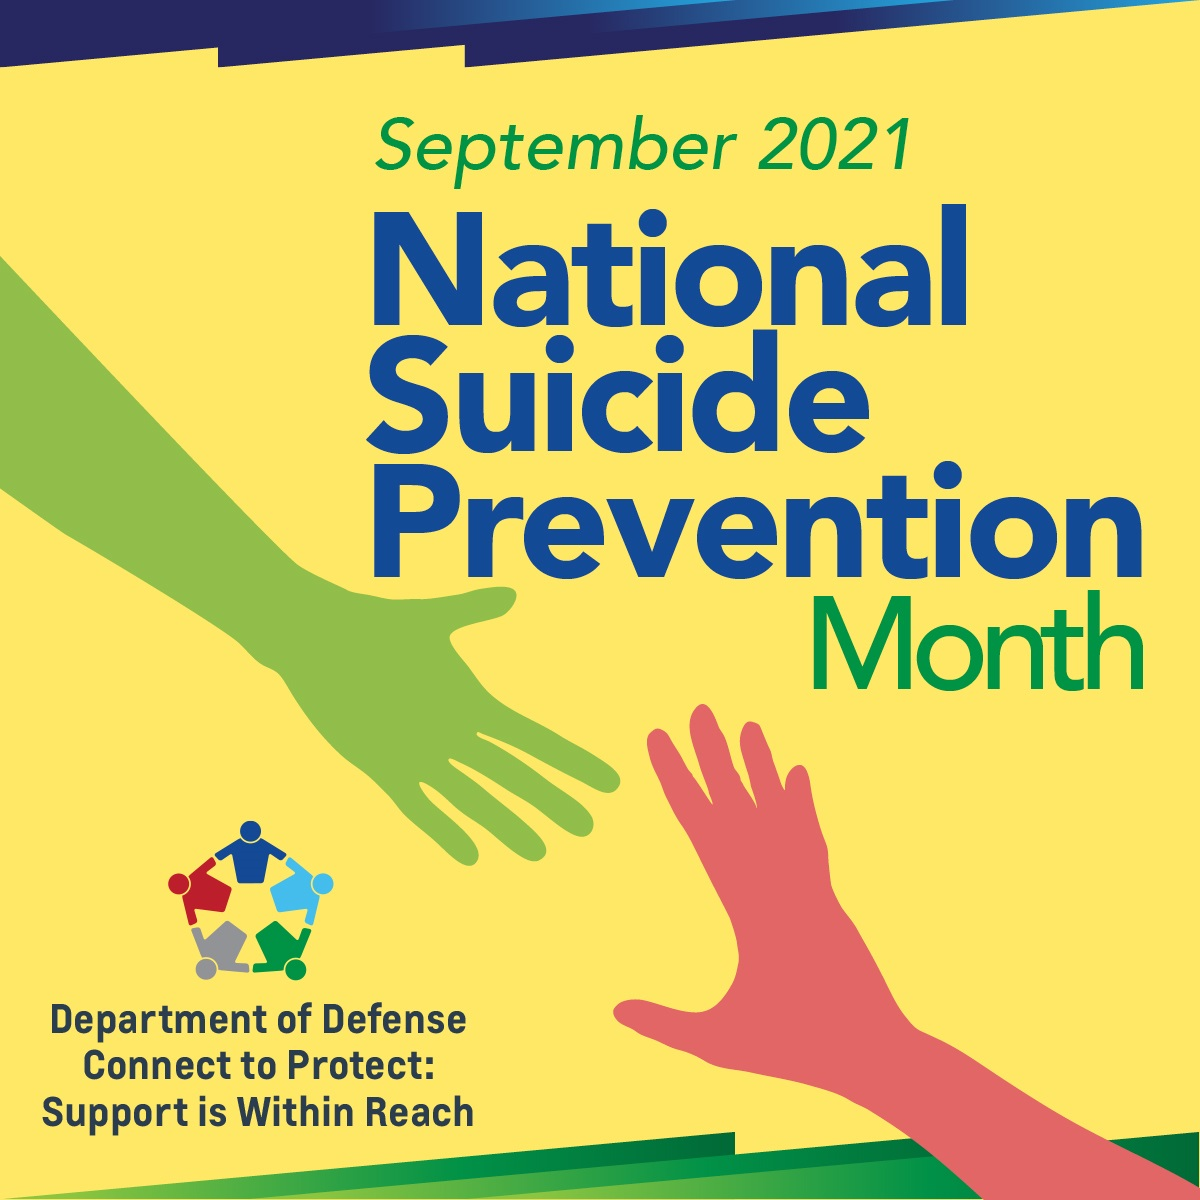 """September is National Suicide Prevention Month. This year's theme, """"Connect to Protect: Support Is Within Reach,"""" emphasizes connections with others and the community, as well as with suicide prevention resources."""